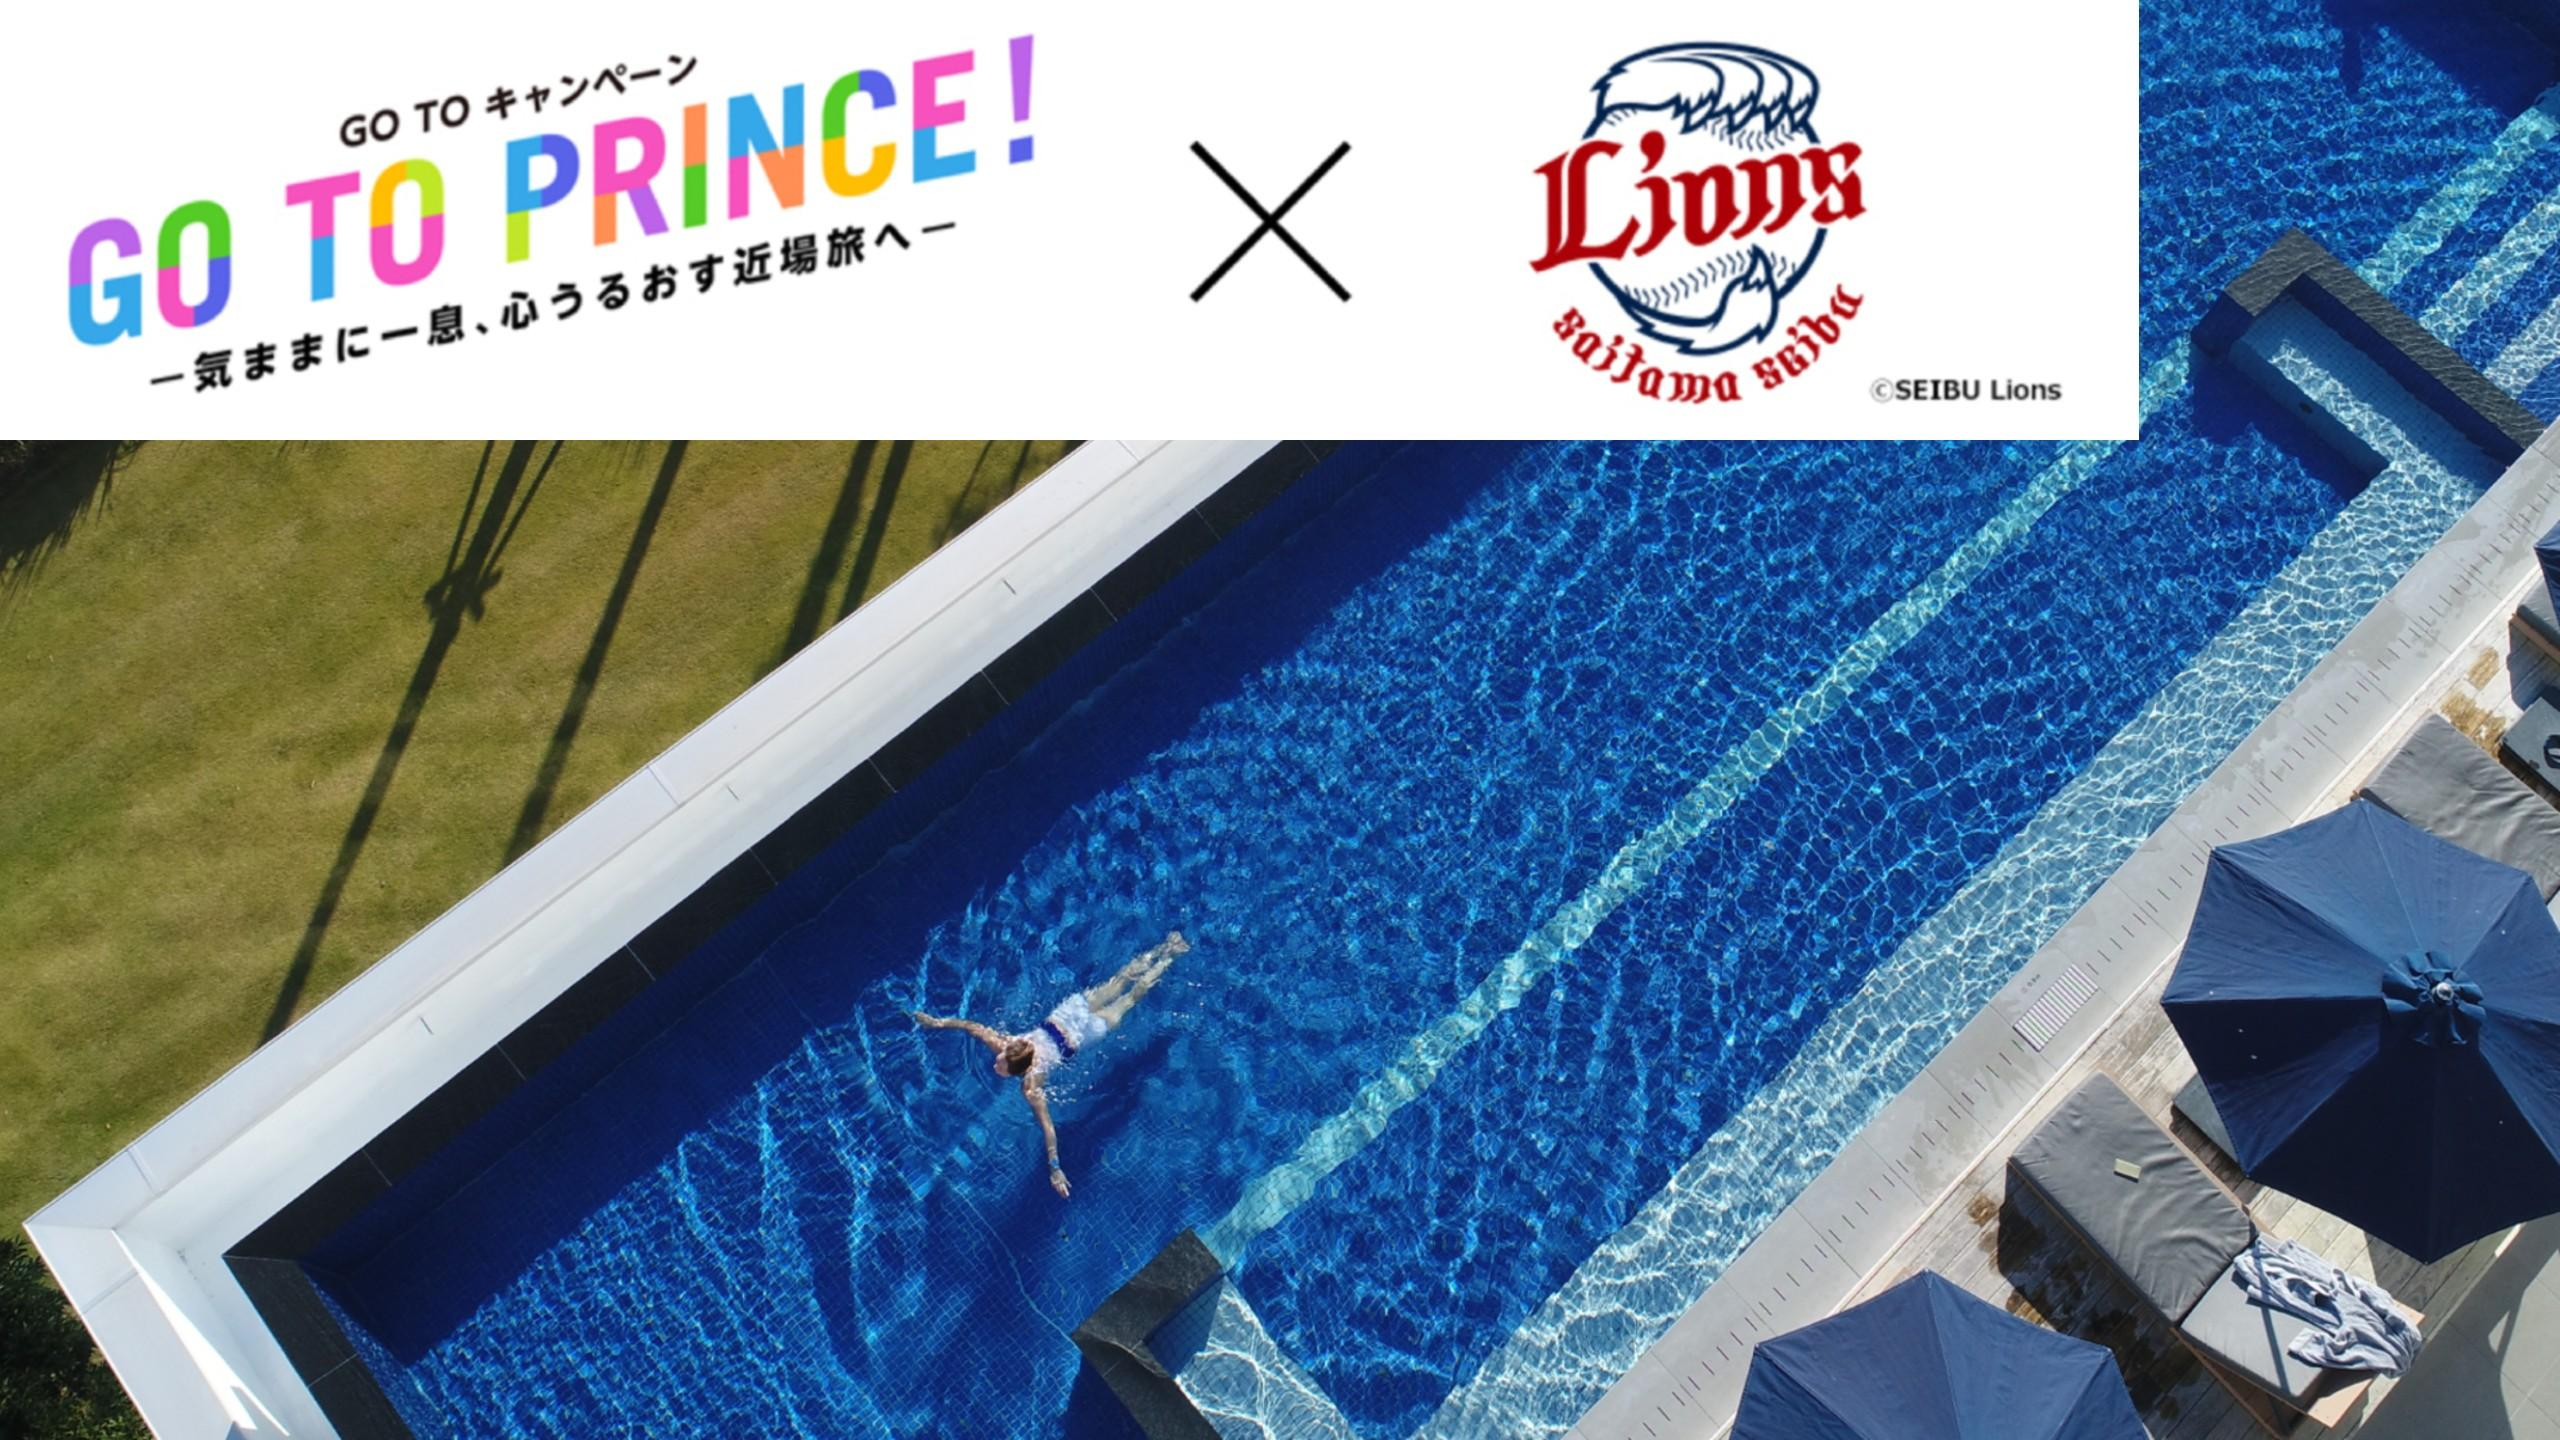 GO TO PRINCE